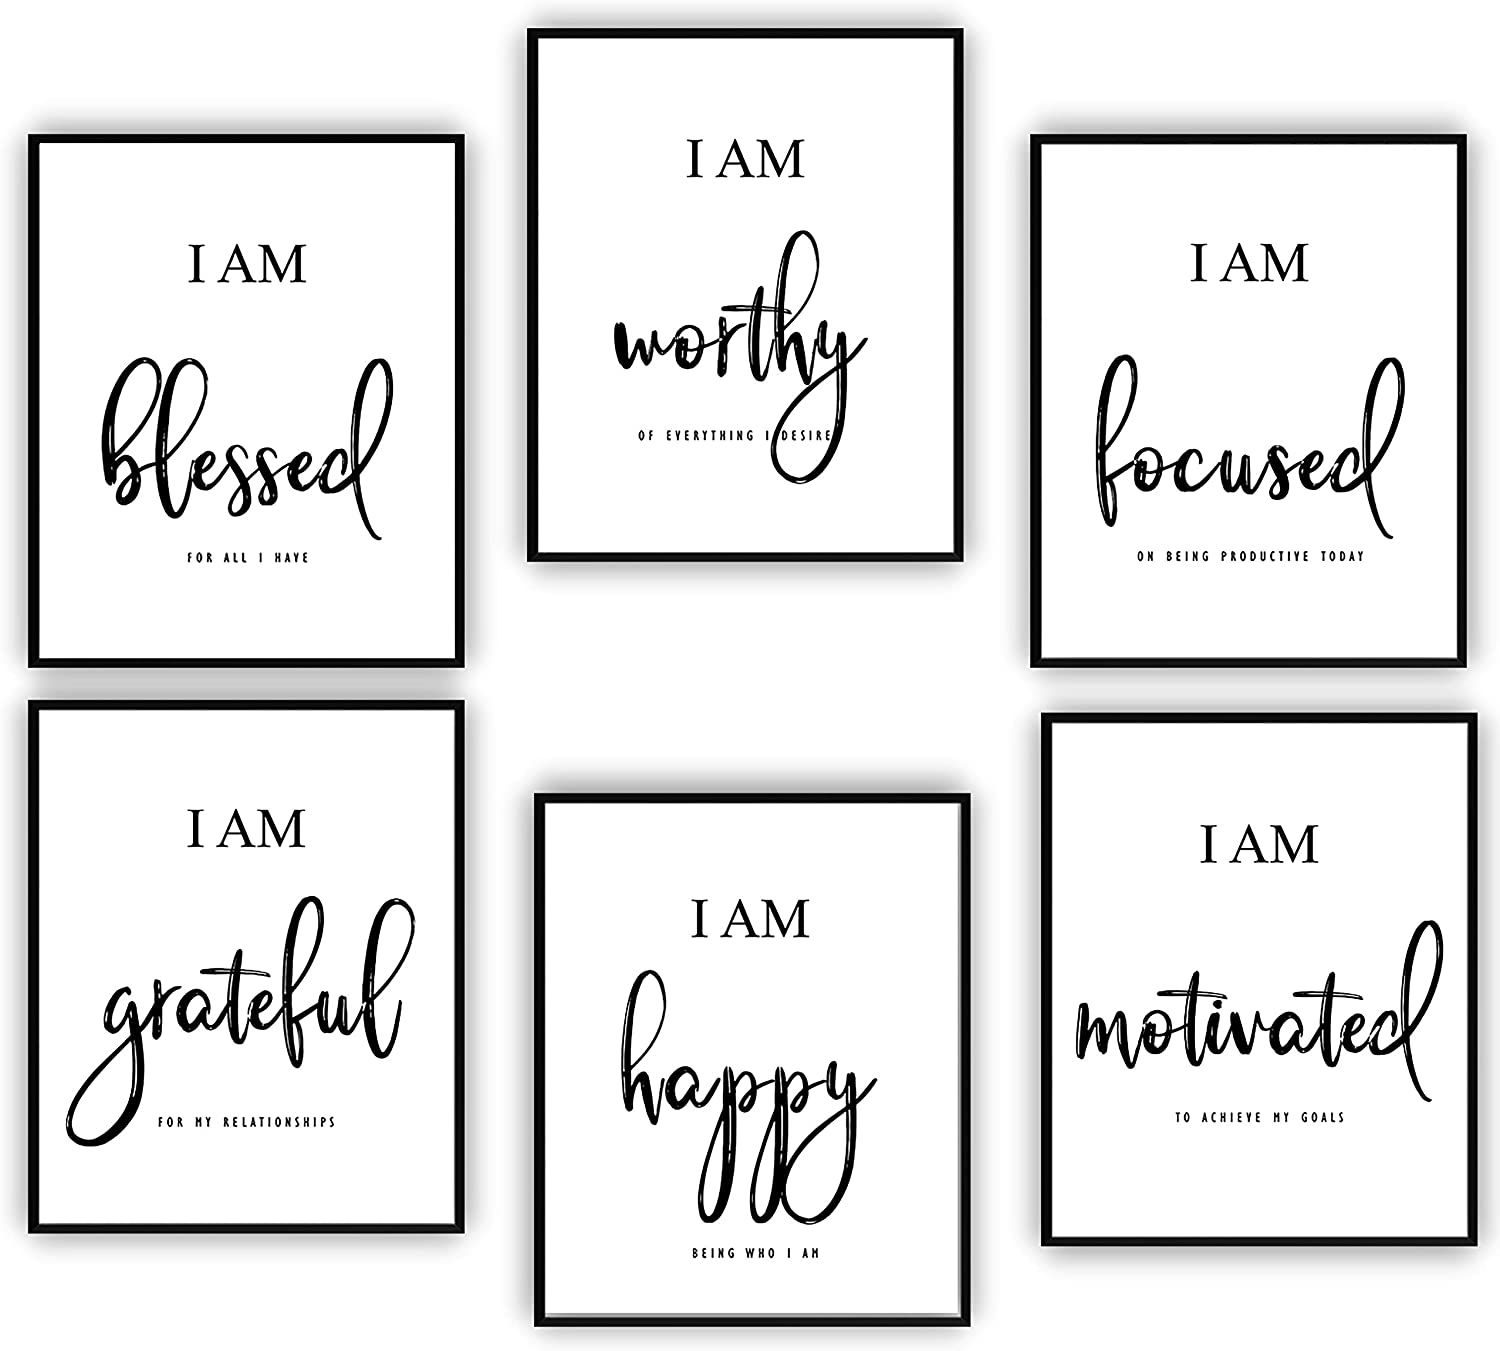 Inspirational Wall Art - Motivational Wall Art - Office & Bedroom Wall Decor - Positive Quotes & Sayings - Daily Affirmations for Men, Women & Kids - Black & White Poster Prints (8X10, Set of 6, No Frame)